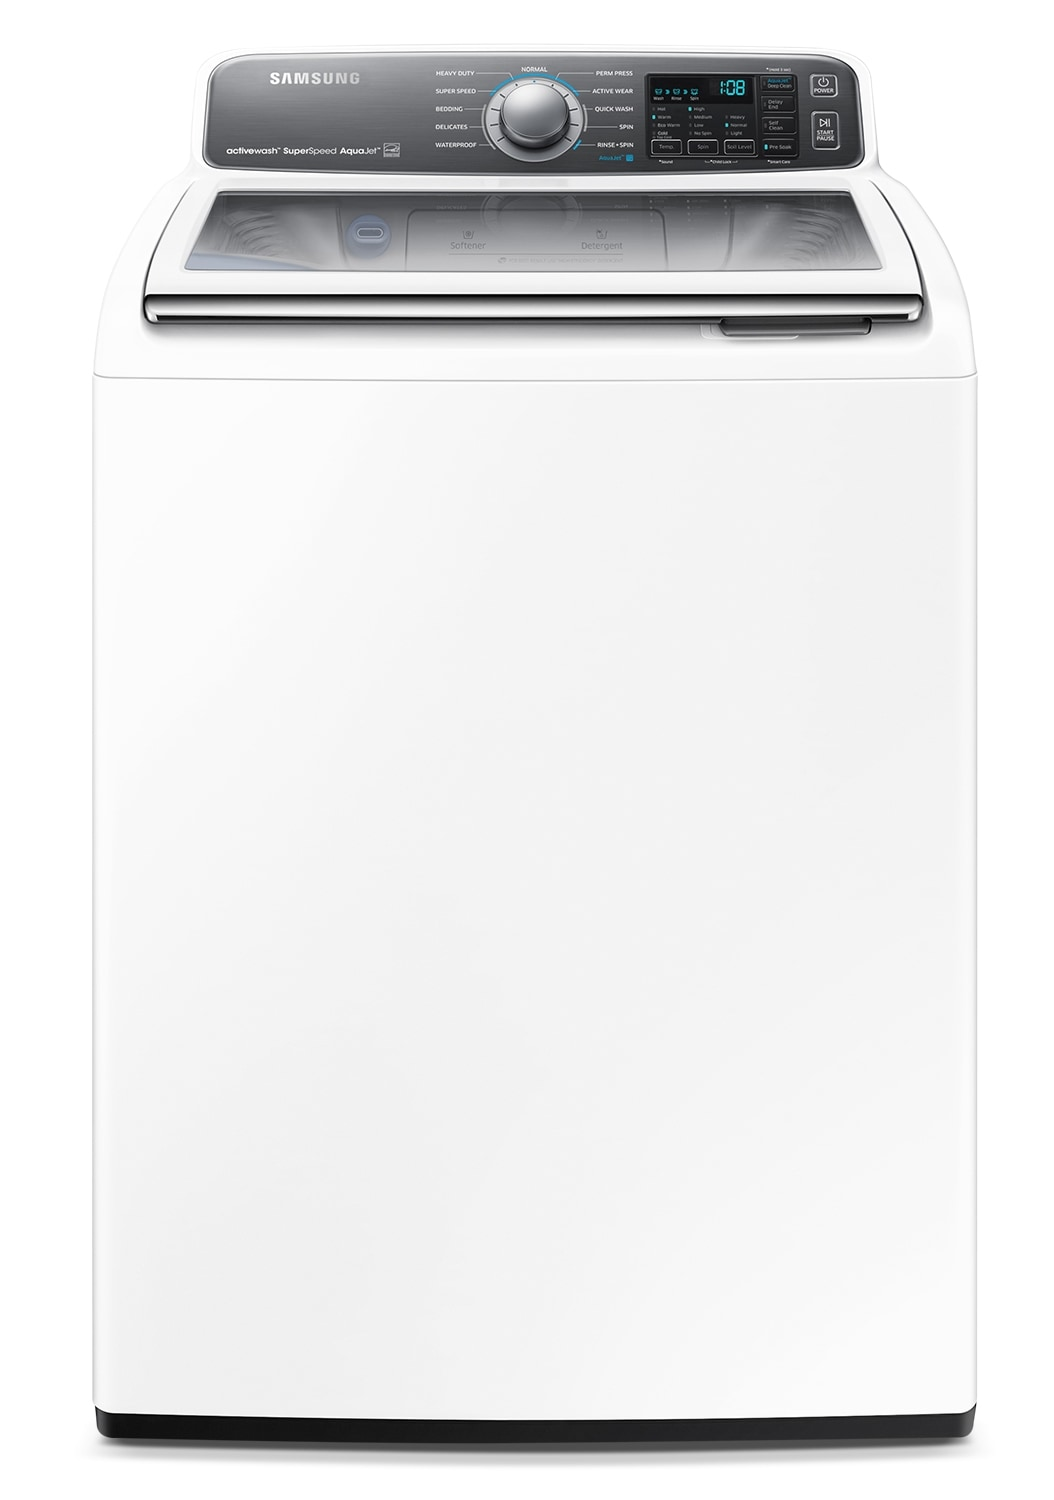 Samsung White Top-Load Washer (5.5 Cu. Ft.) - WA48J7770AW/A2